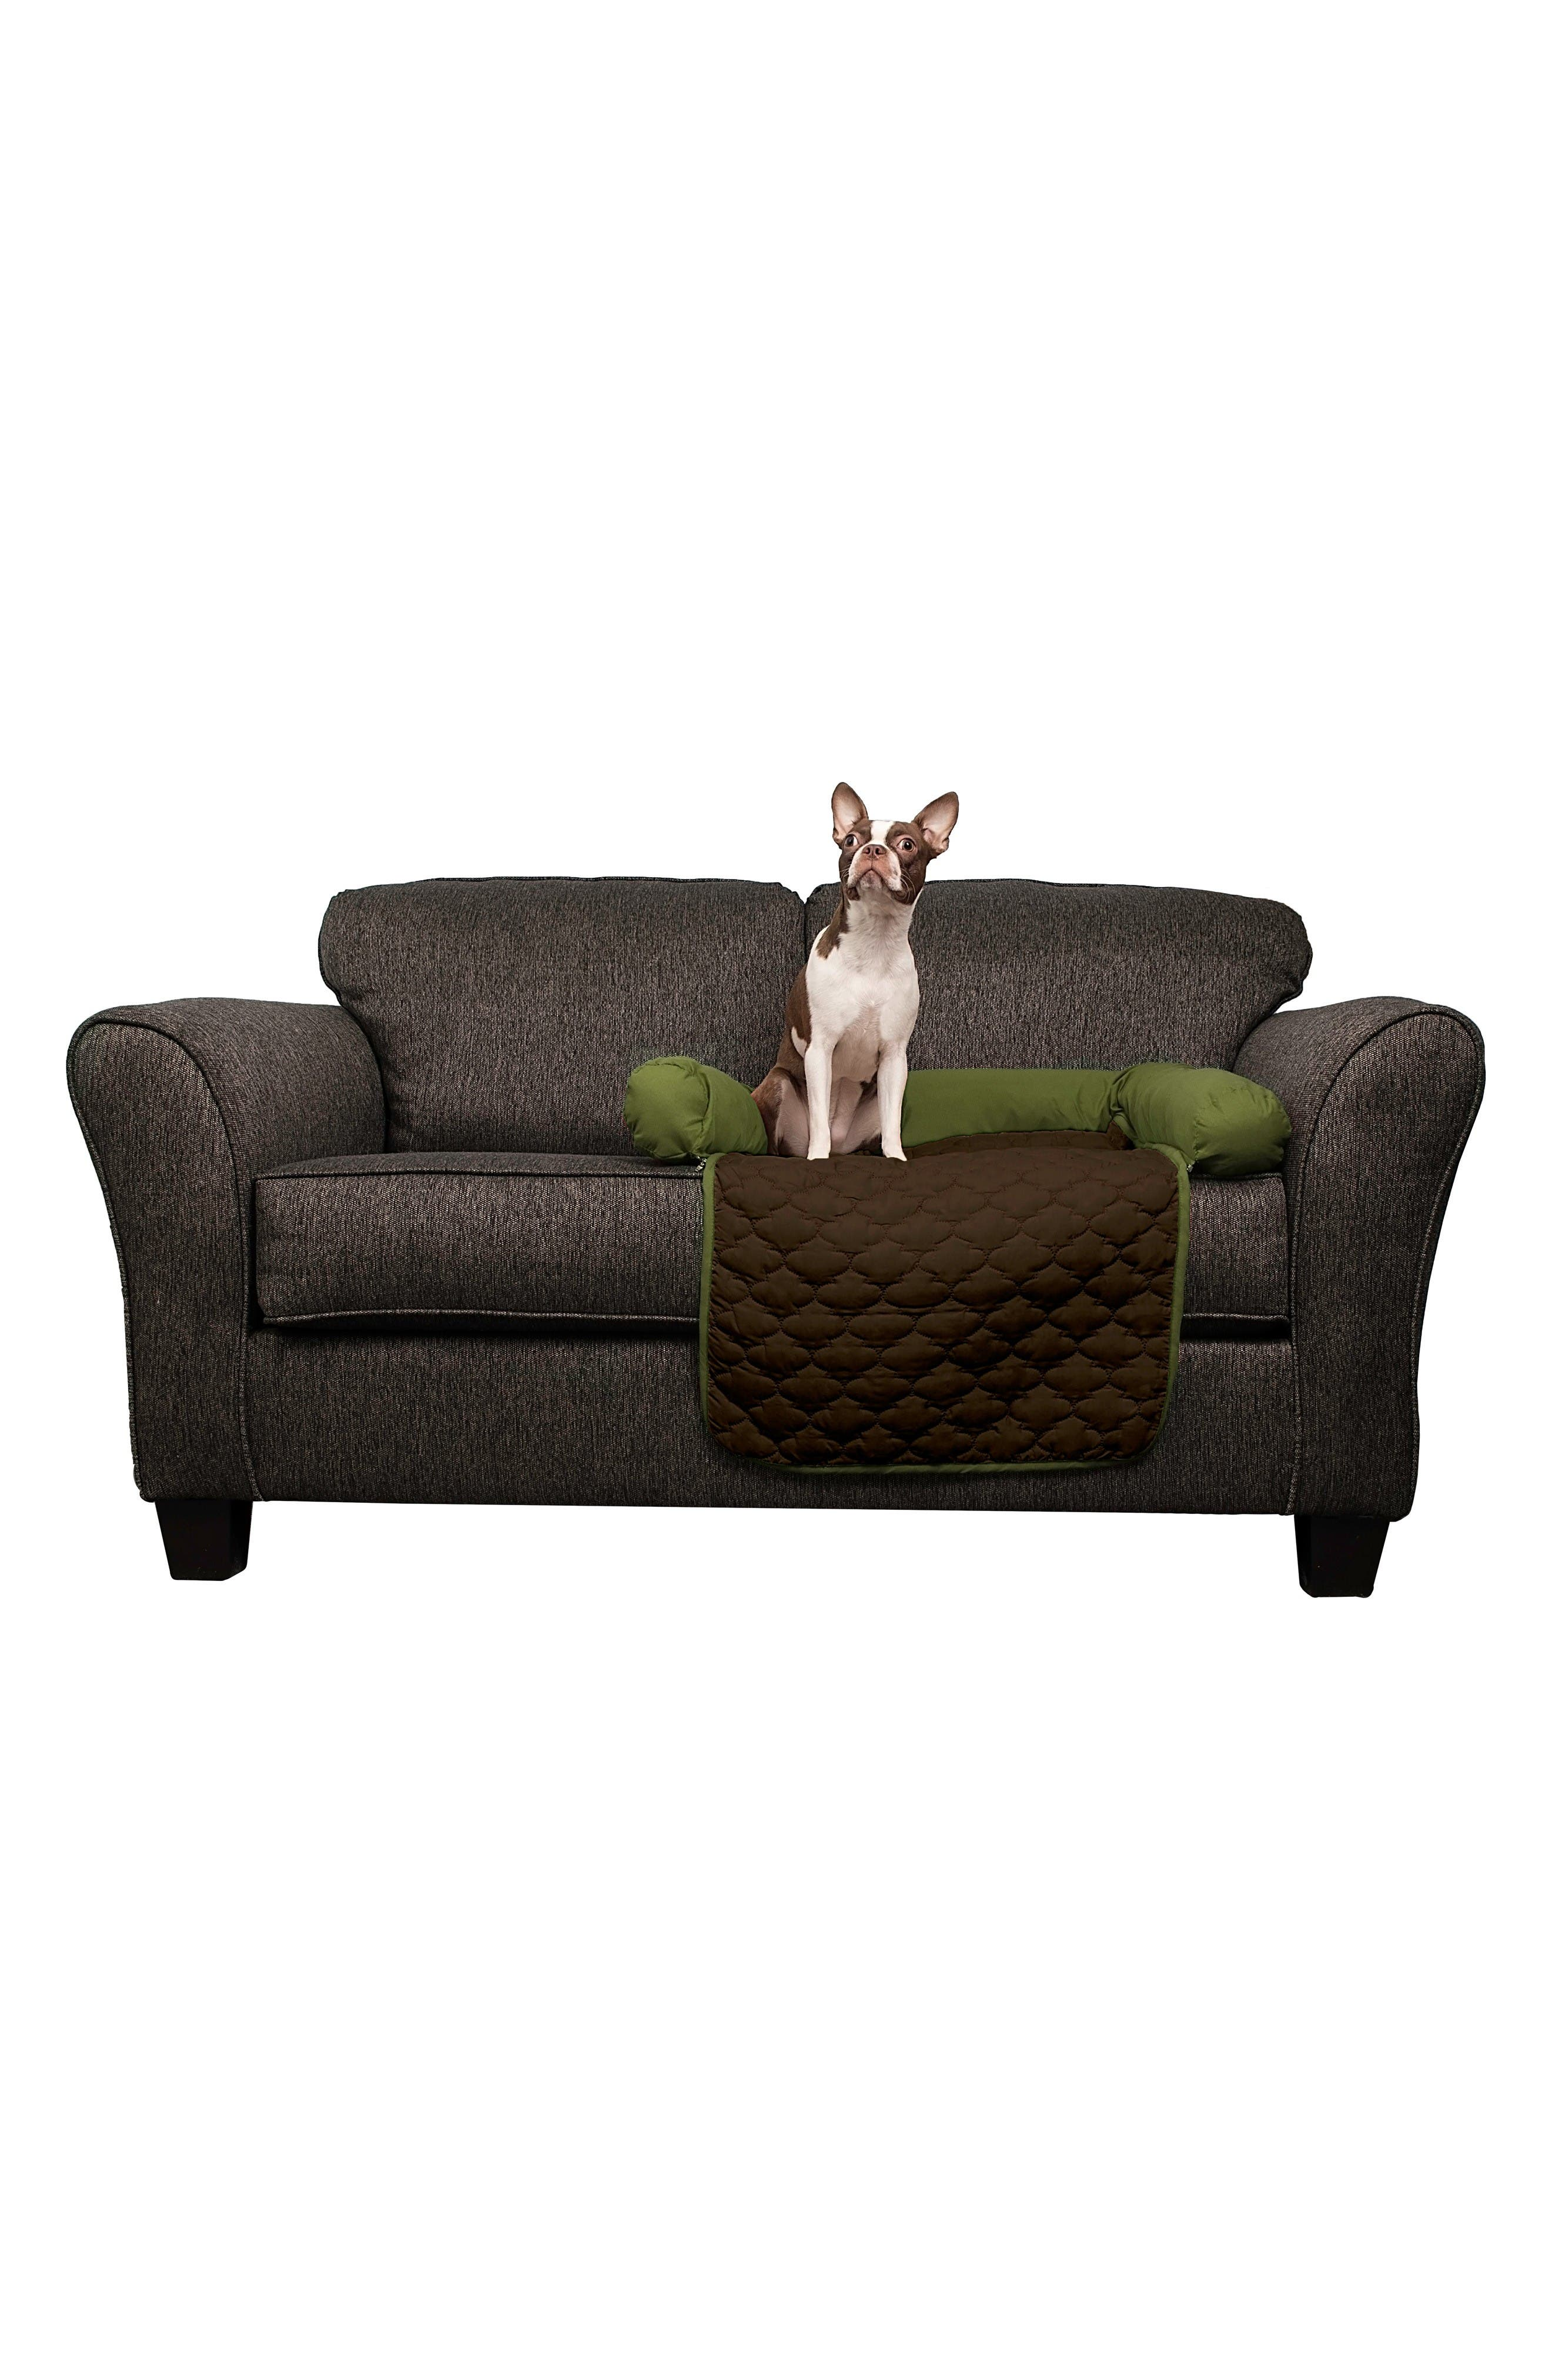 Wubba Reversible Pet Bed,                             Alternate thumbnail 2, color,                             Sage/ Chocolate